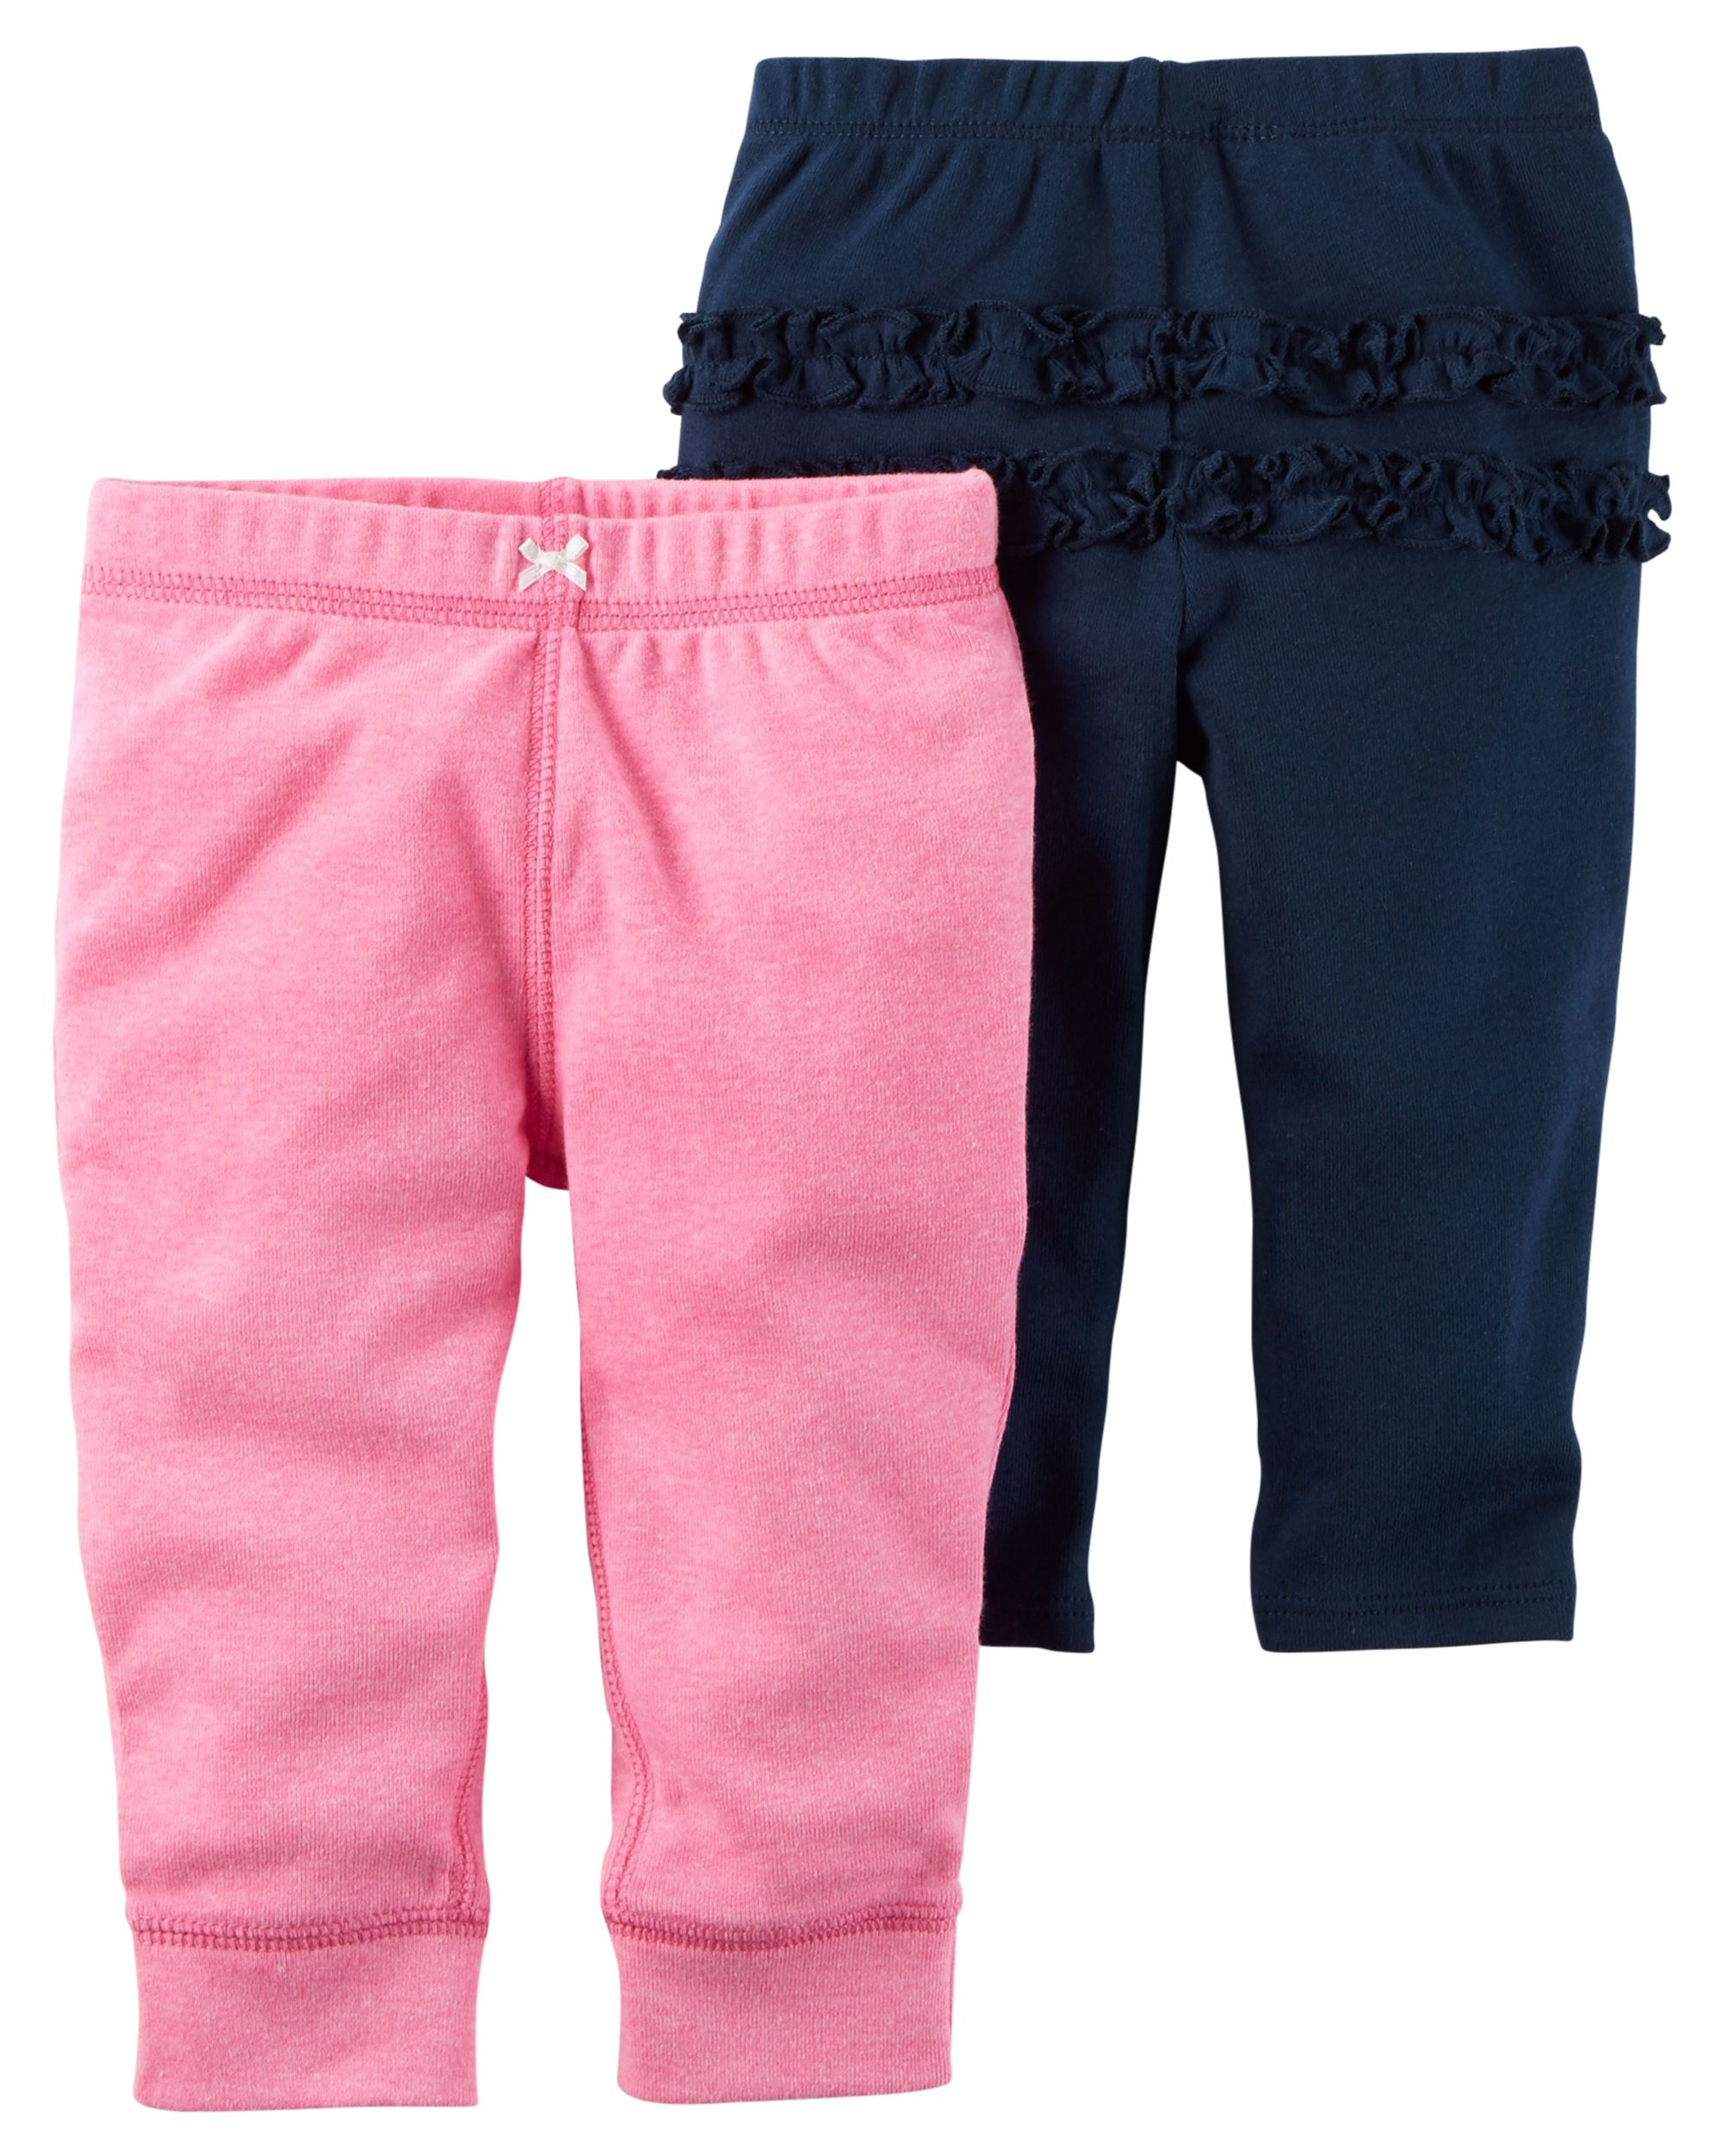 54537e69f 2-Pack Babysoft Neon Pants | Katilin Marie | Carters baby clothes ...